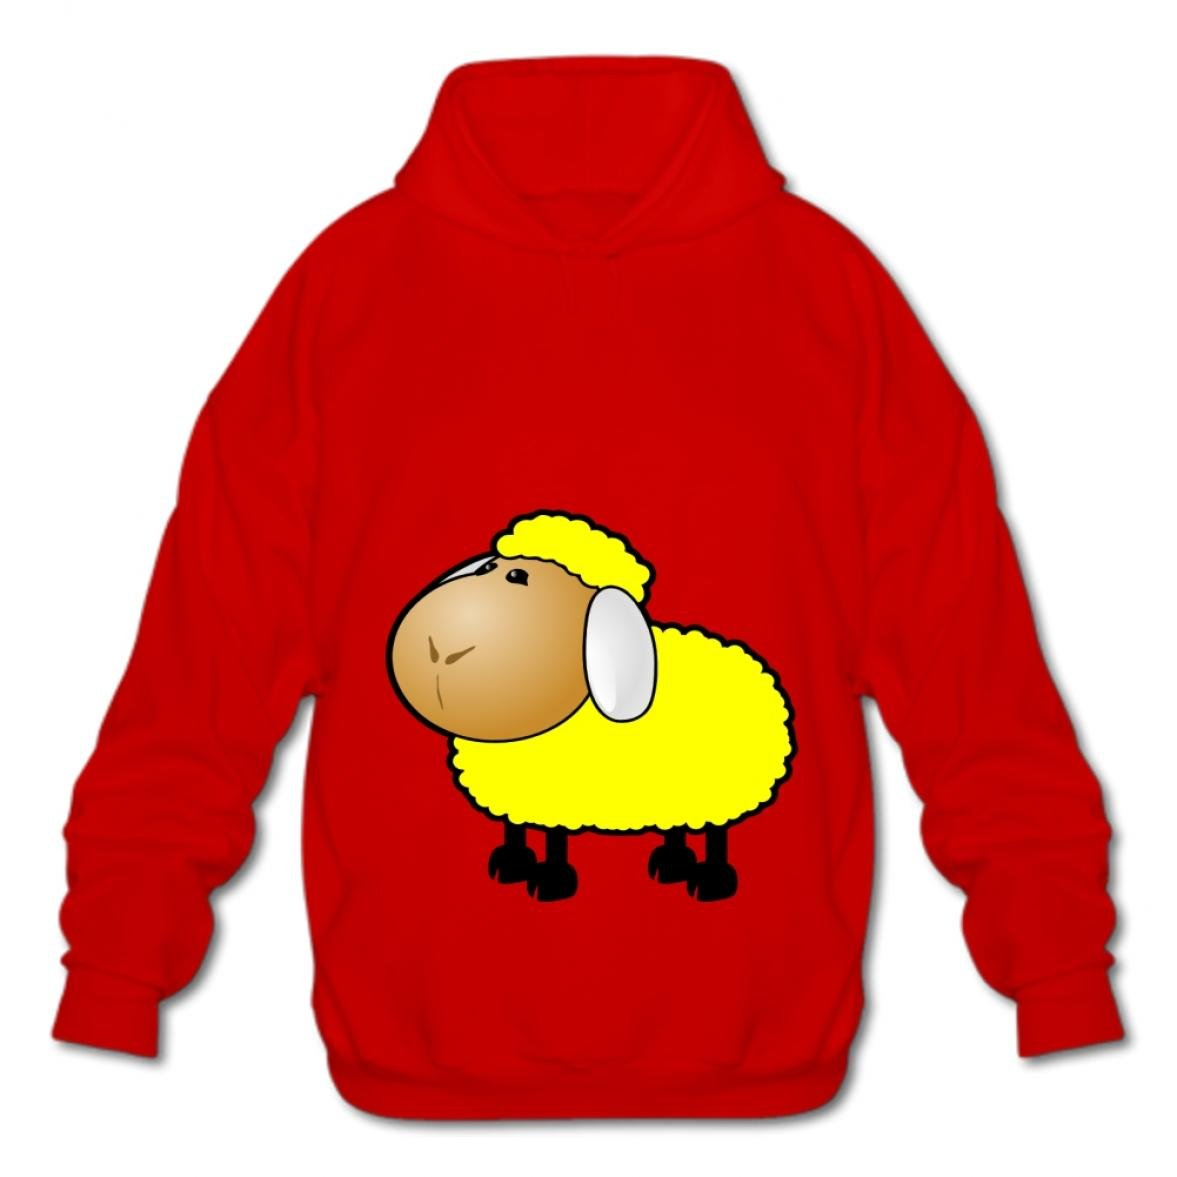 Gizhongqu Fashion Hoodies-03 Cartoon Sheep VPgk Men Cotton Pullover Hooded Sweatshirt Style